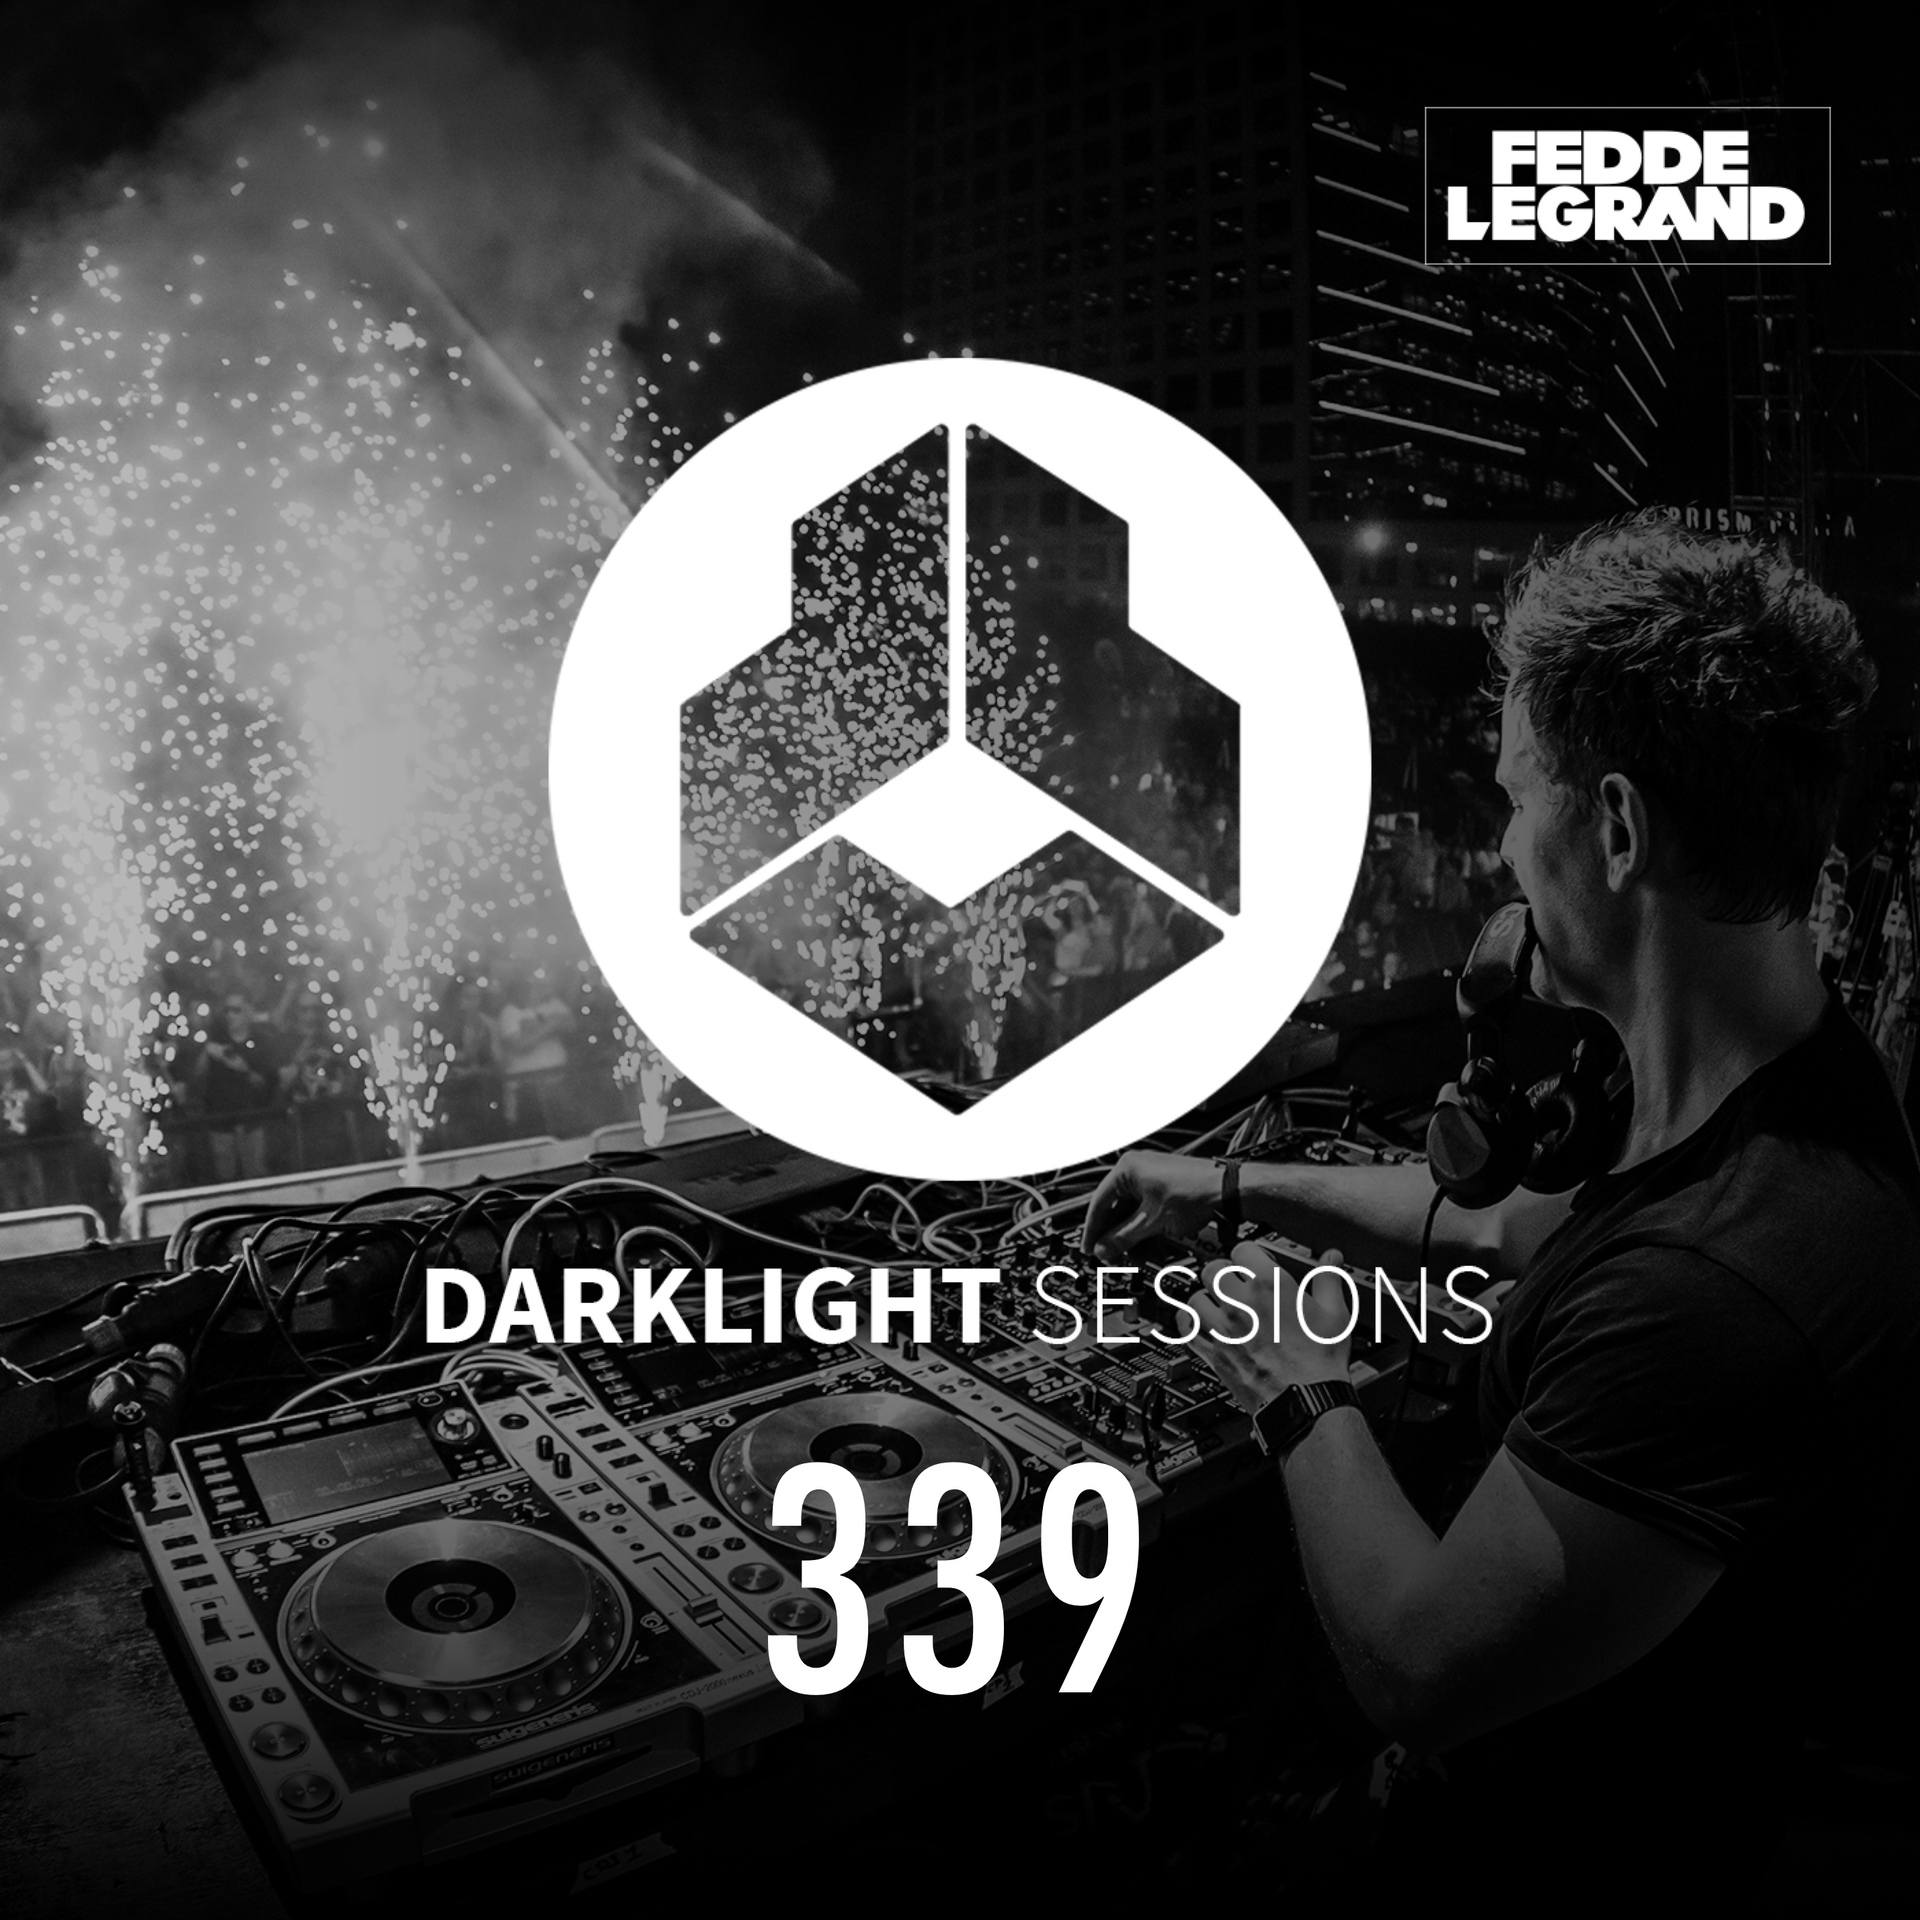 Darklight Sessions 339